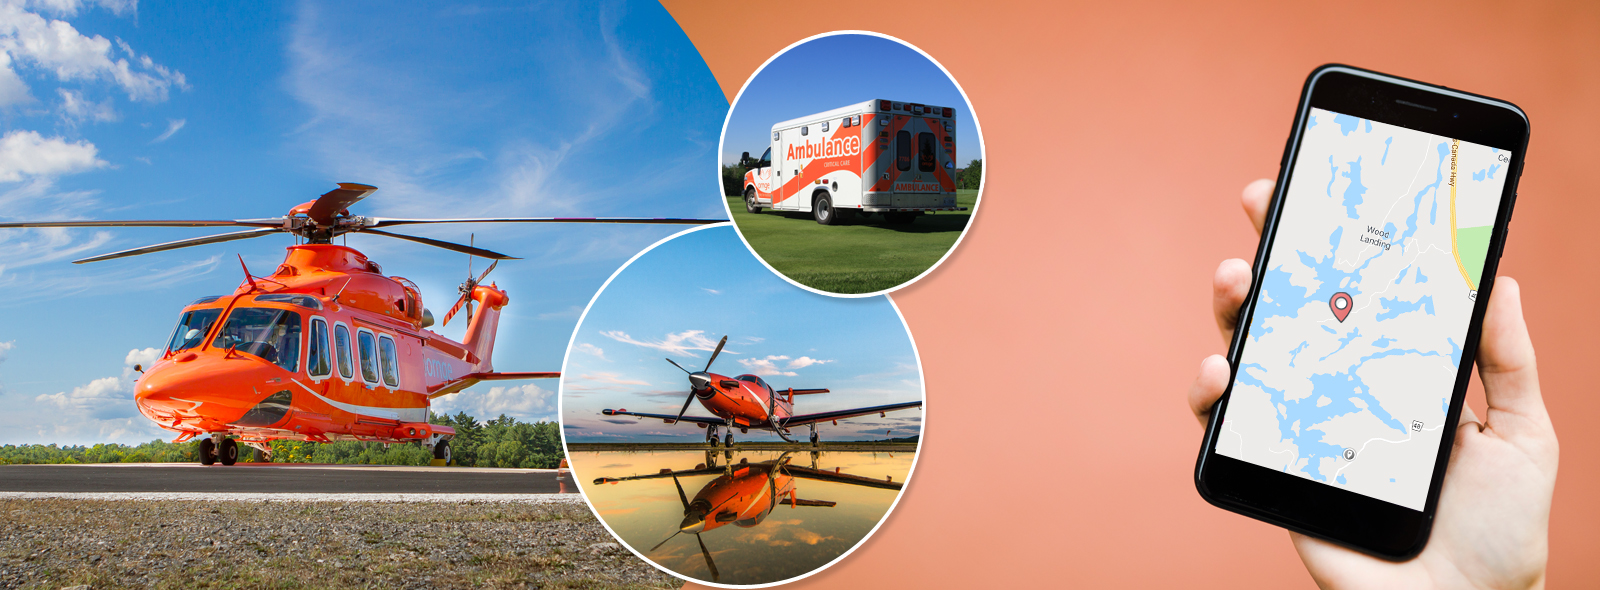 Cellphone and Ornge fleet